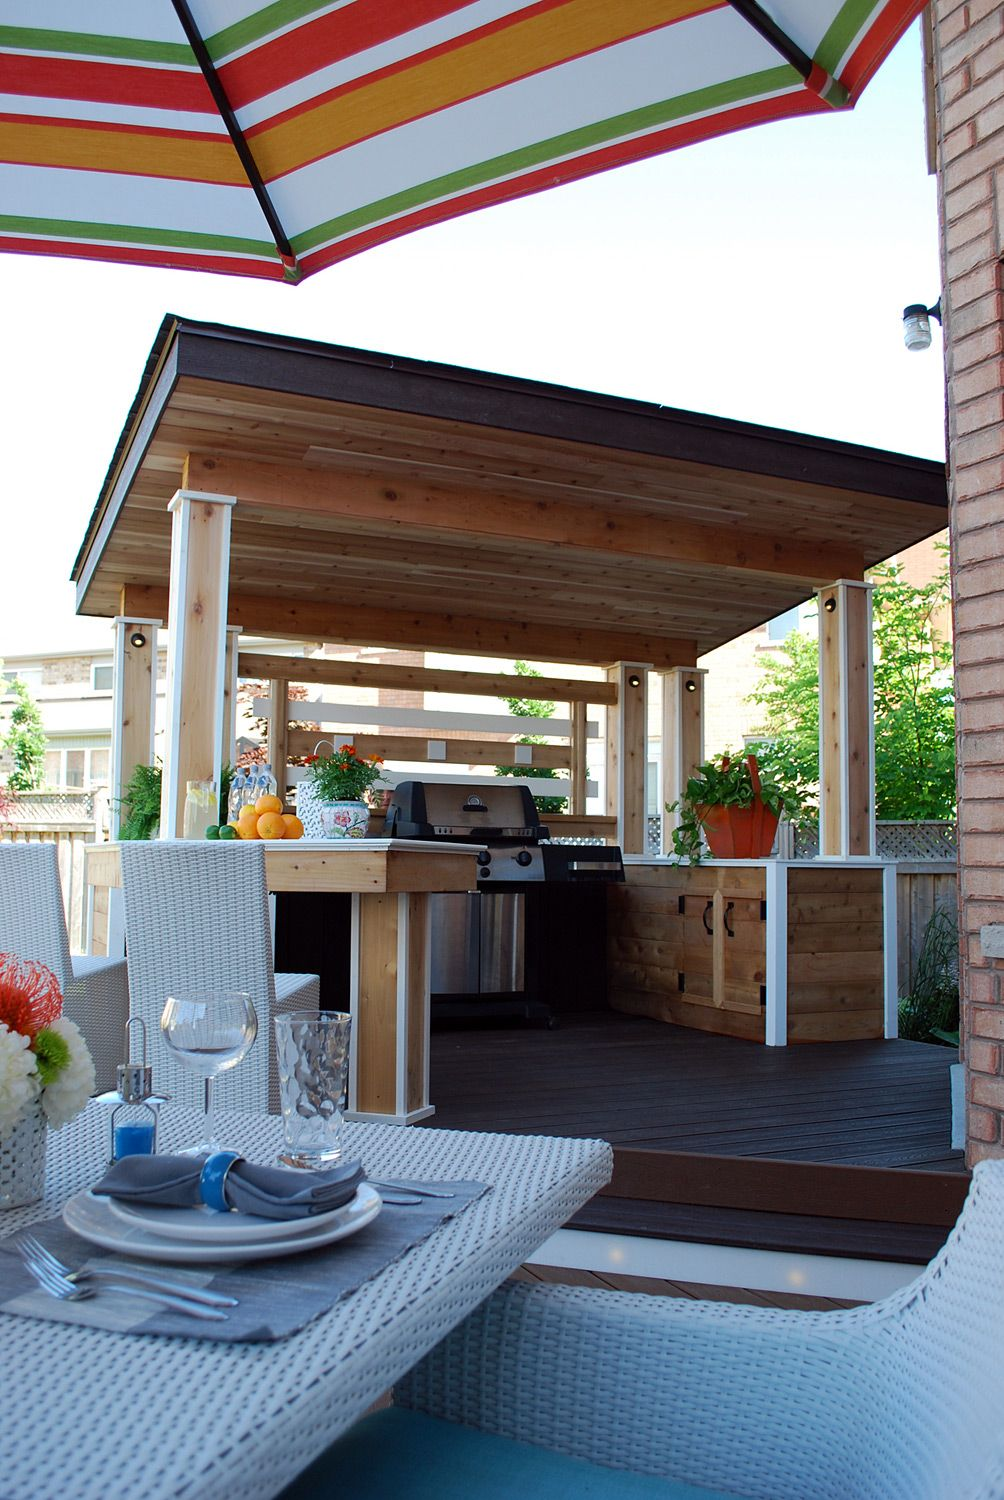 Luxurious Outdoor Kitchen Sheltered Sloped Roof